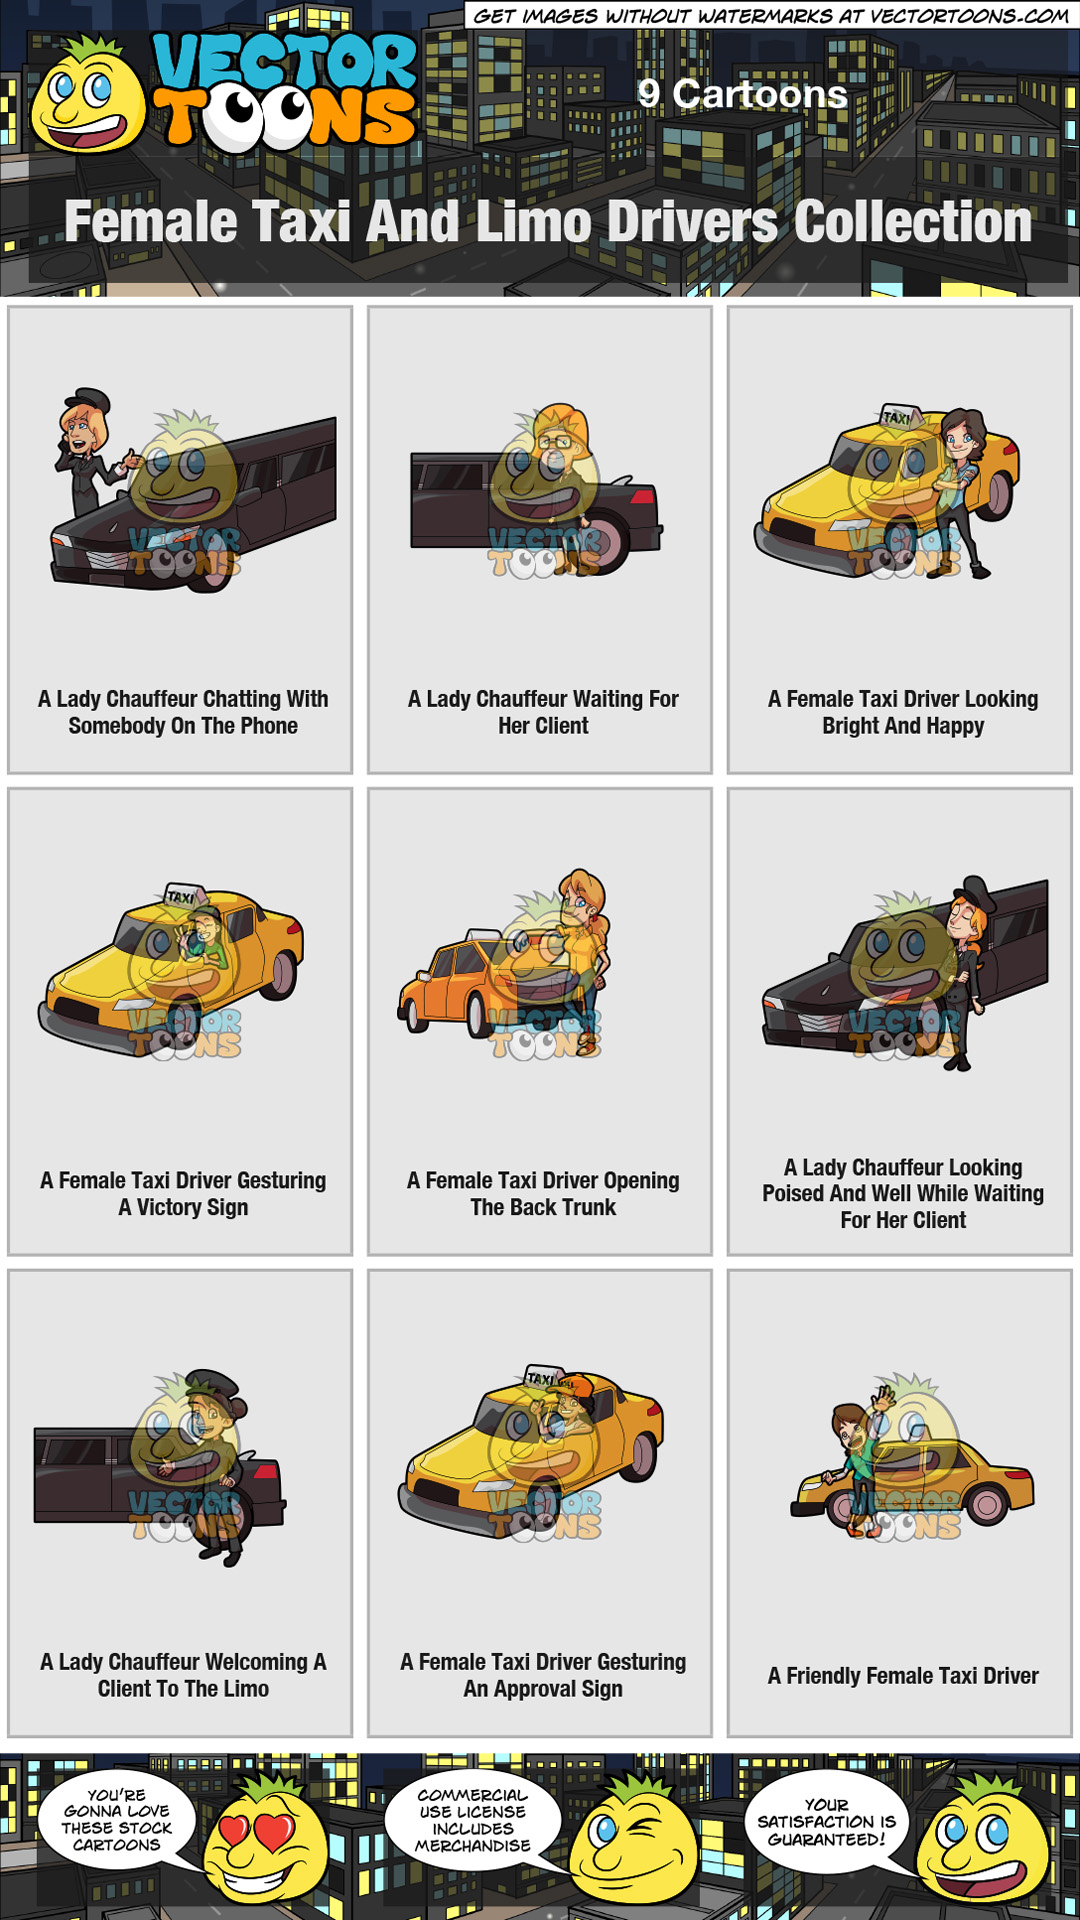 Female Taxi And Limo Drivers Collection thumbnail